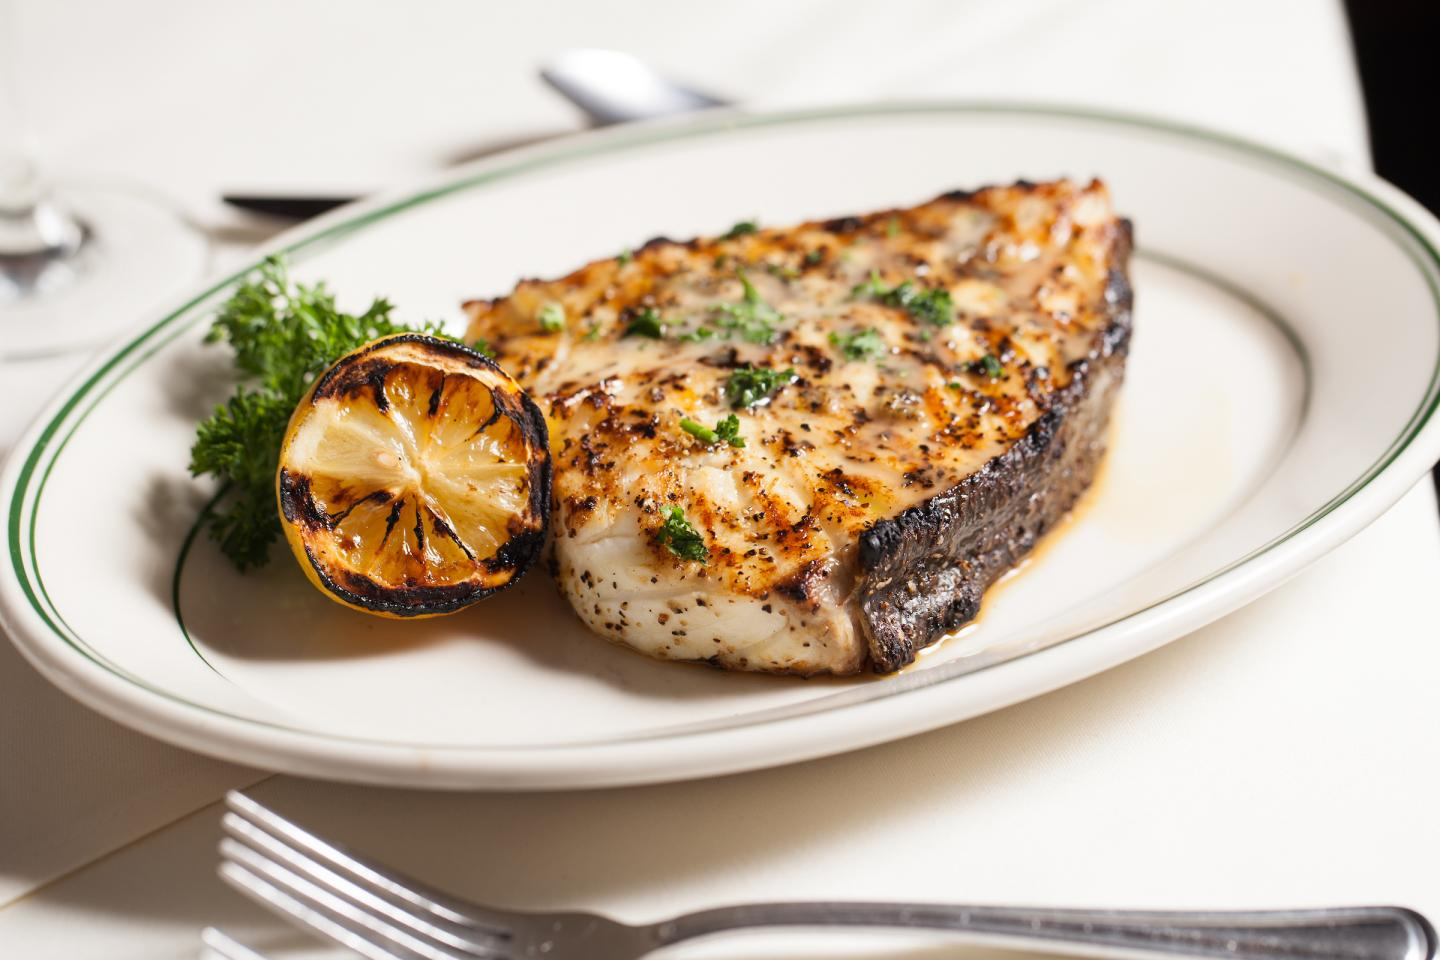 Joe's Bone In Alaskan Halibut